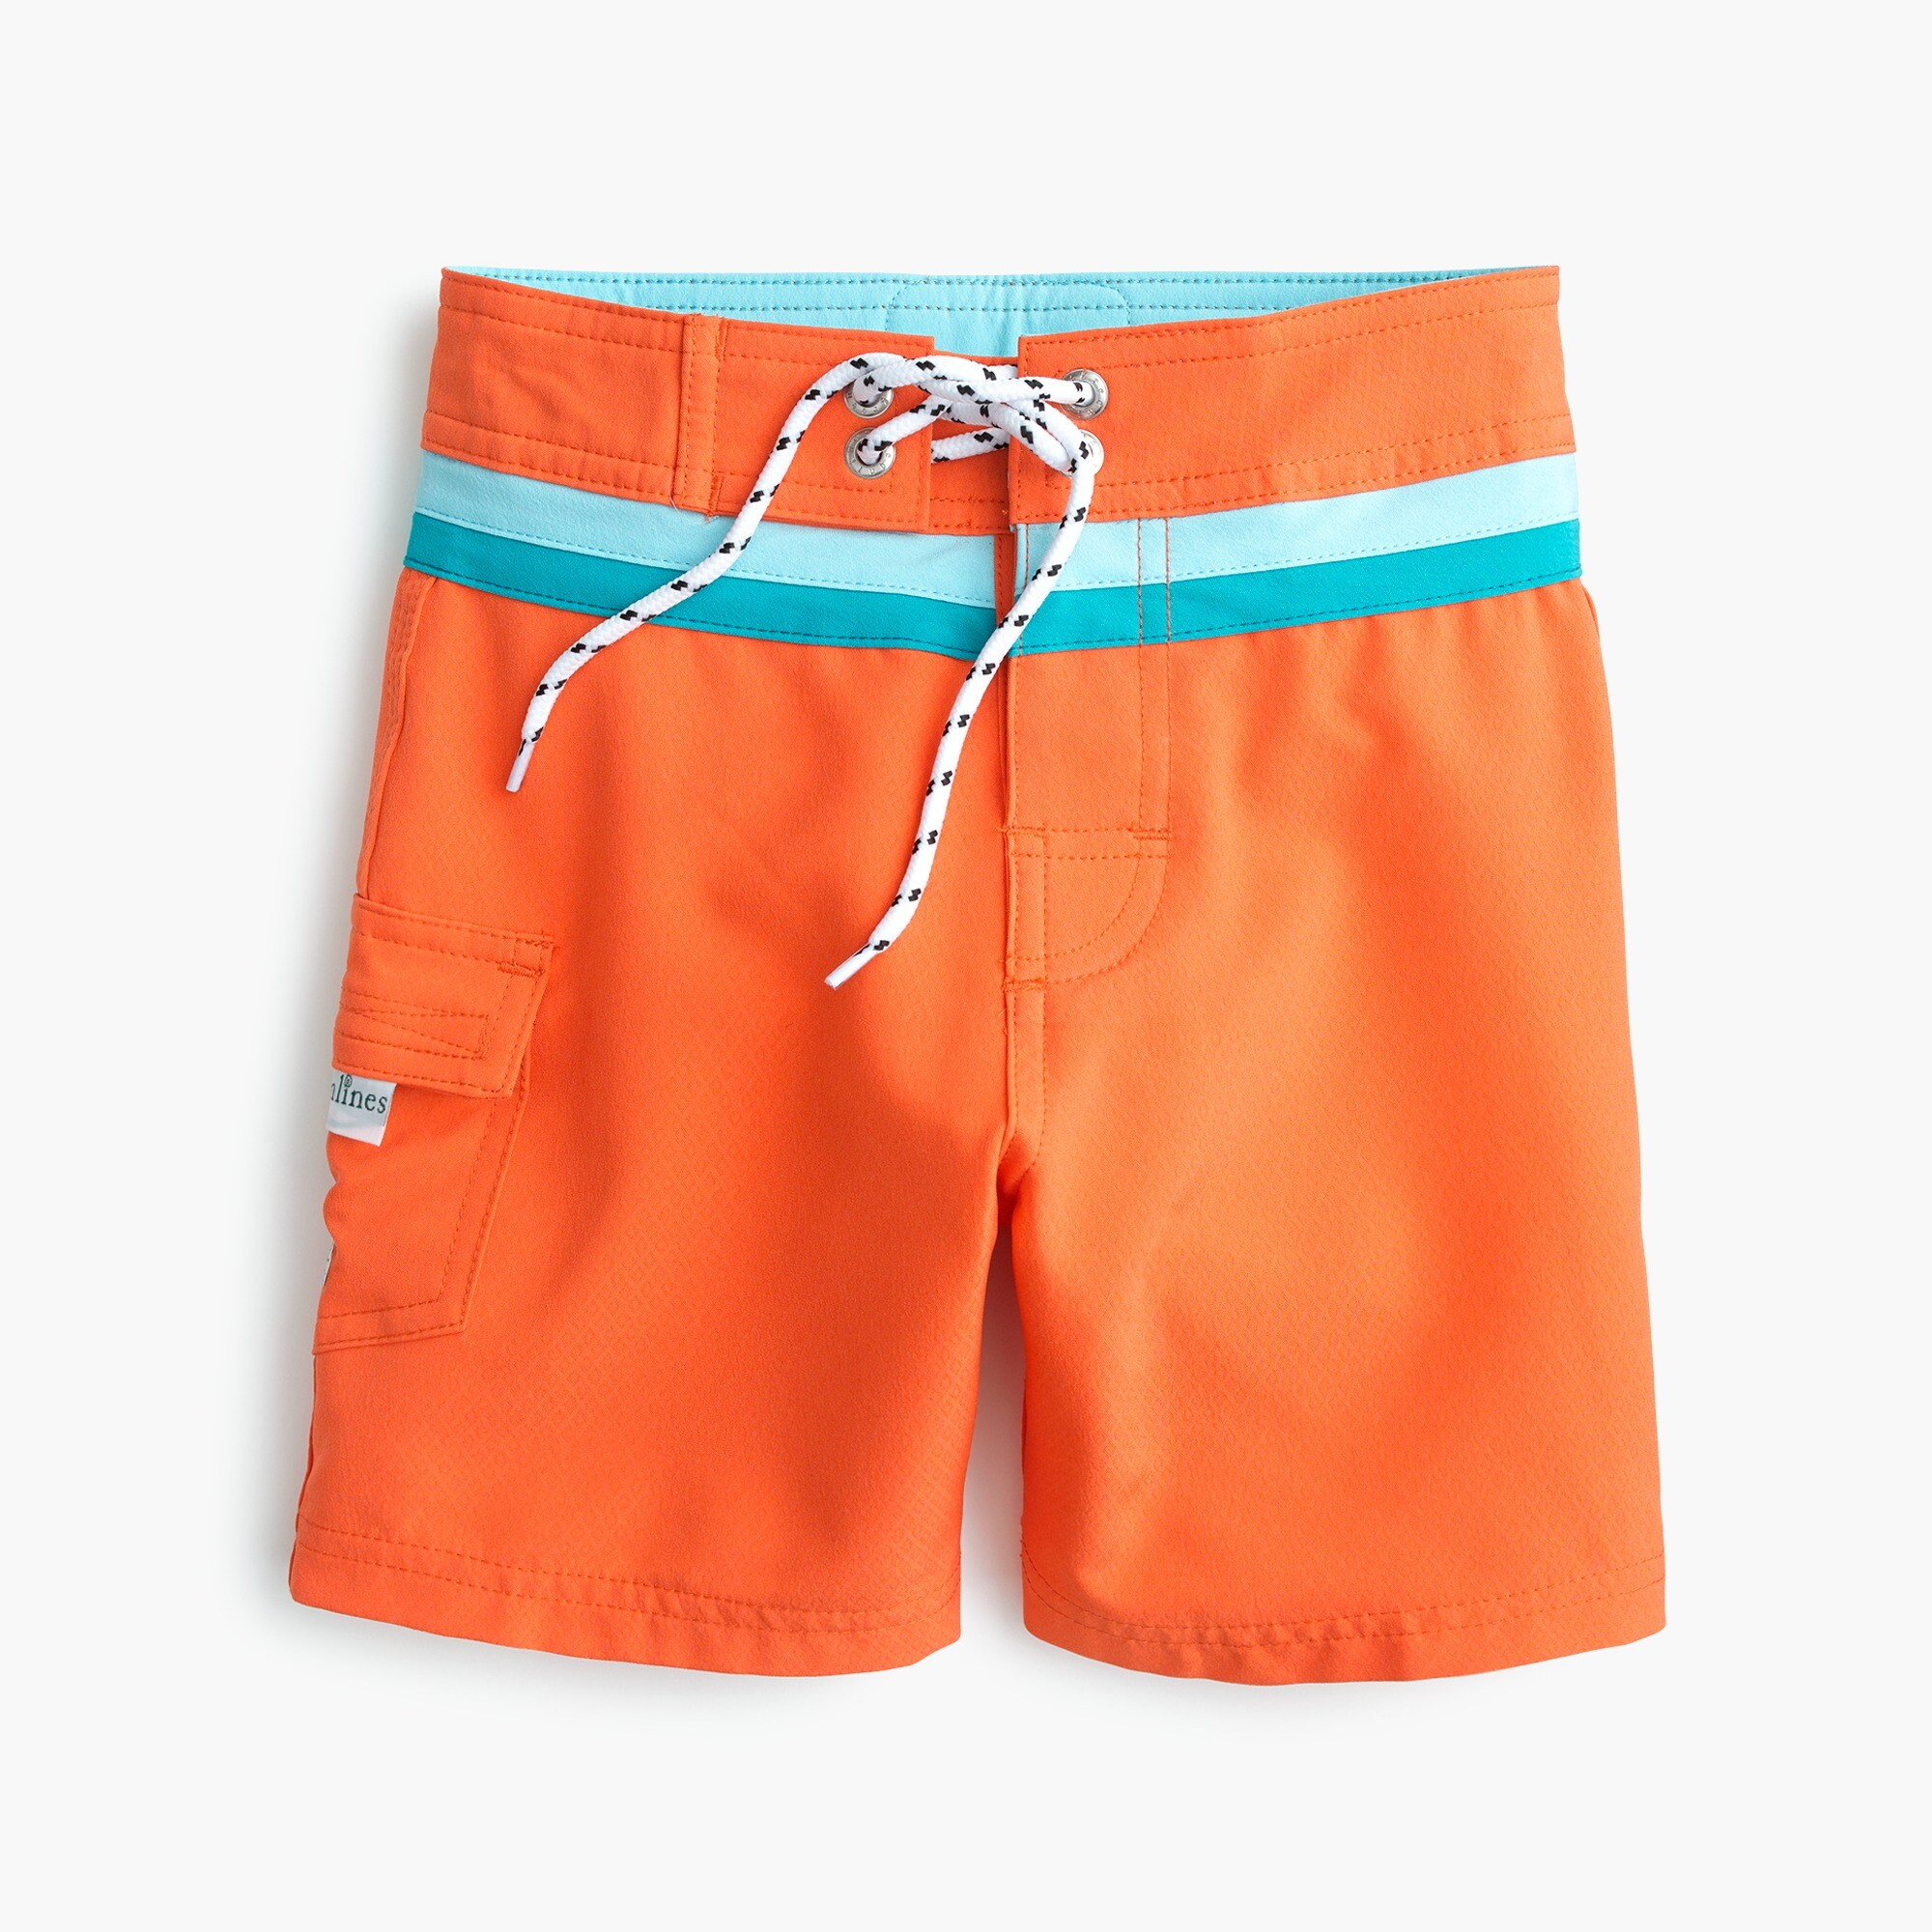 Boys' Greenlines® Bonfire board short boy new arrivals c